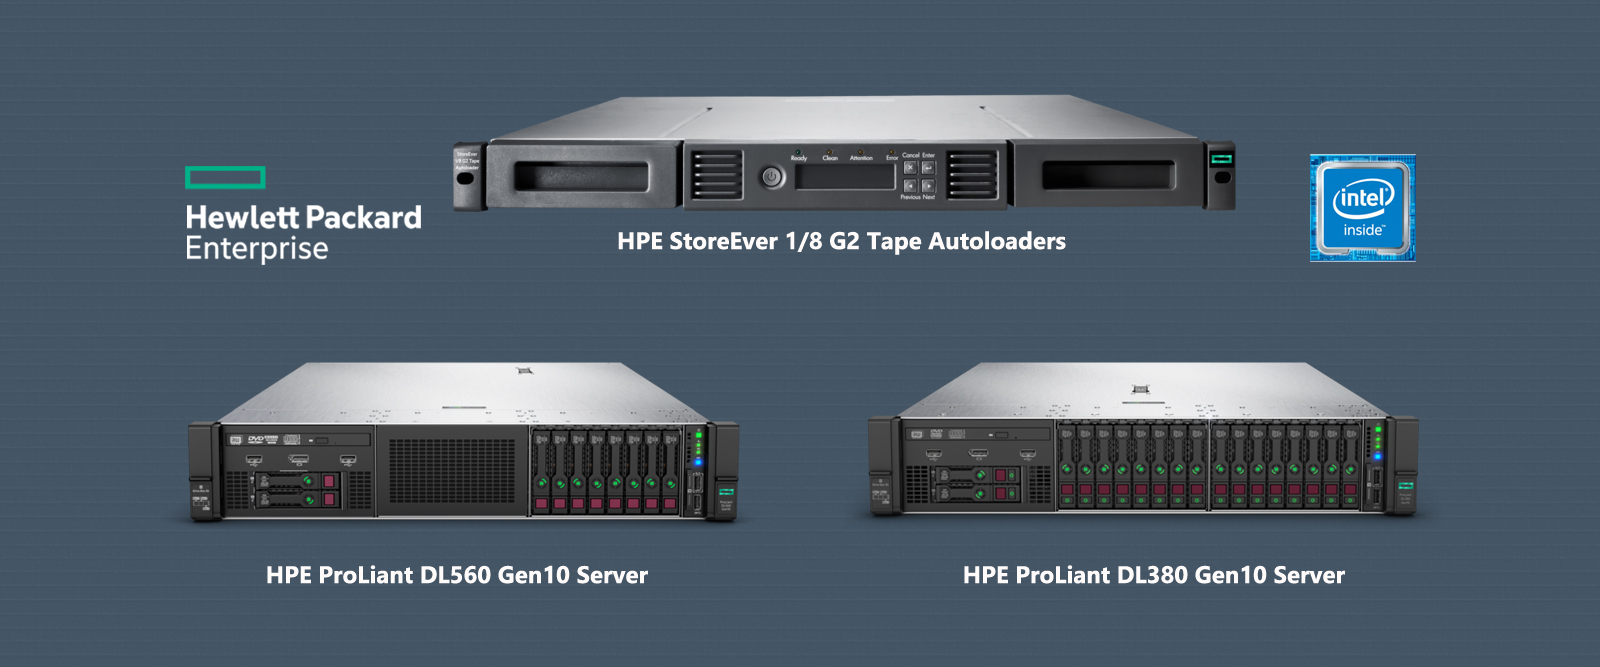 HPE ProLiant DL380 Gen10 Server, HPE ProLiant DL560 Gen10 Server, HPE StoreEver 1/8 G2 Tape Autoloaders